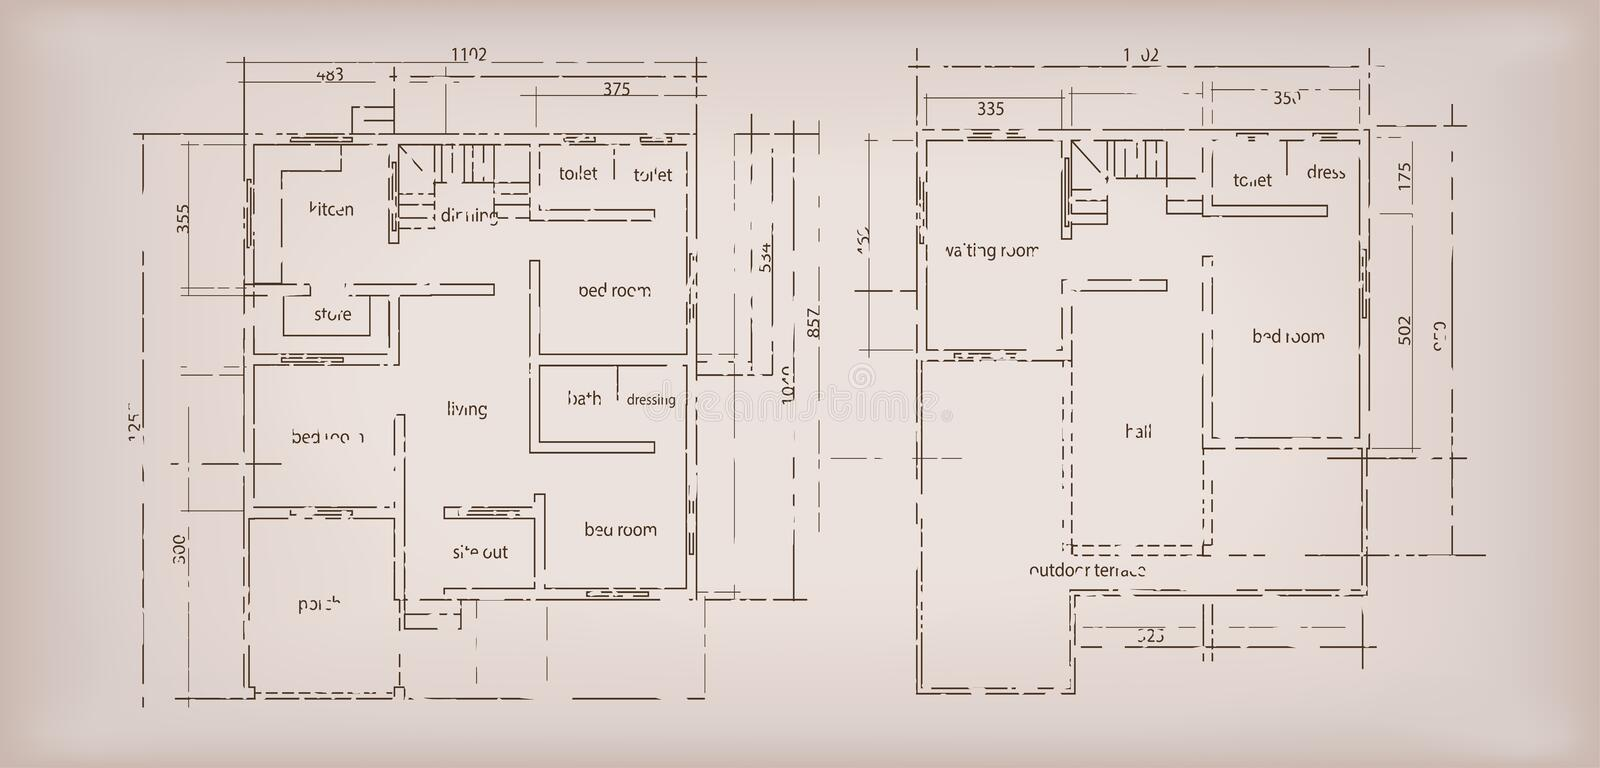 House building structure sketch plan drawing vintage for Horizontal house plans